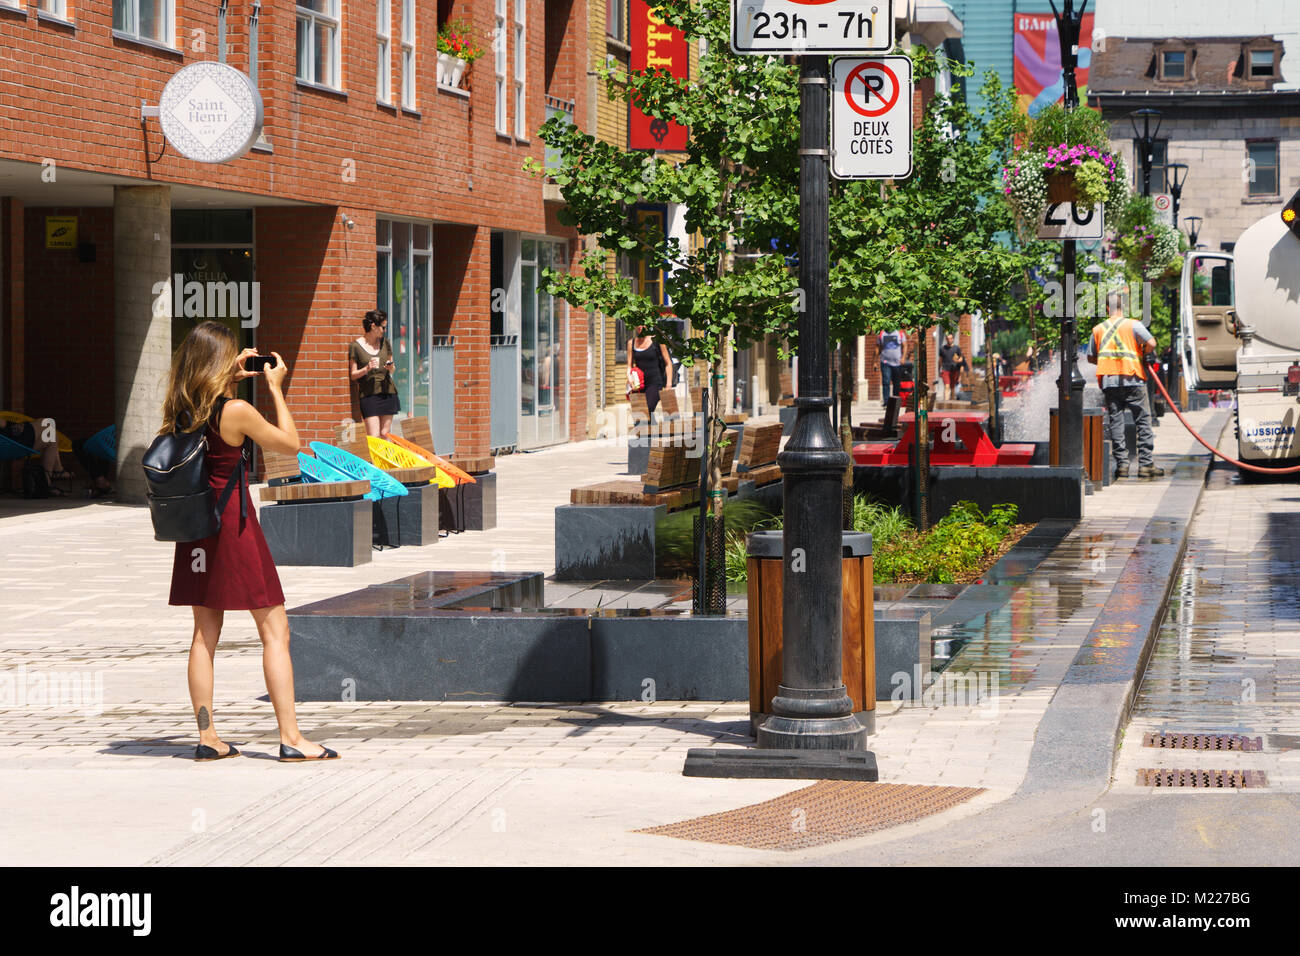 Young woman taking a picture with her smart phone on Emery street, Montreal, province of Quebec, Canada. - Stock Image